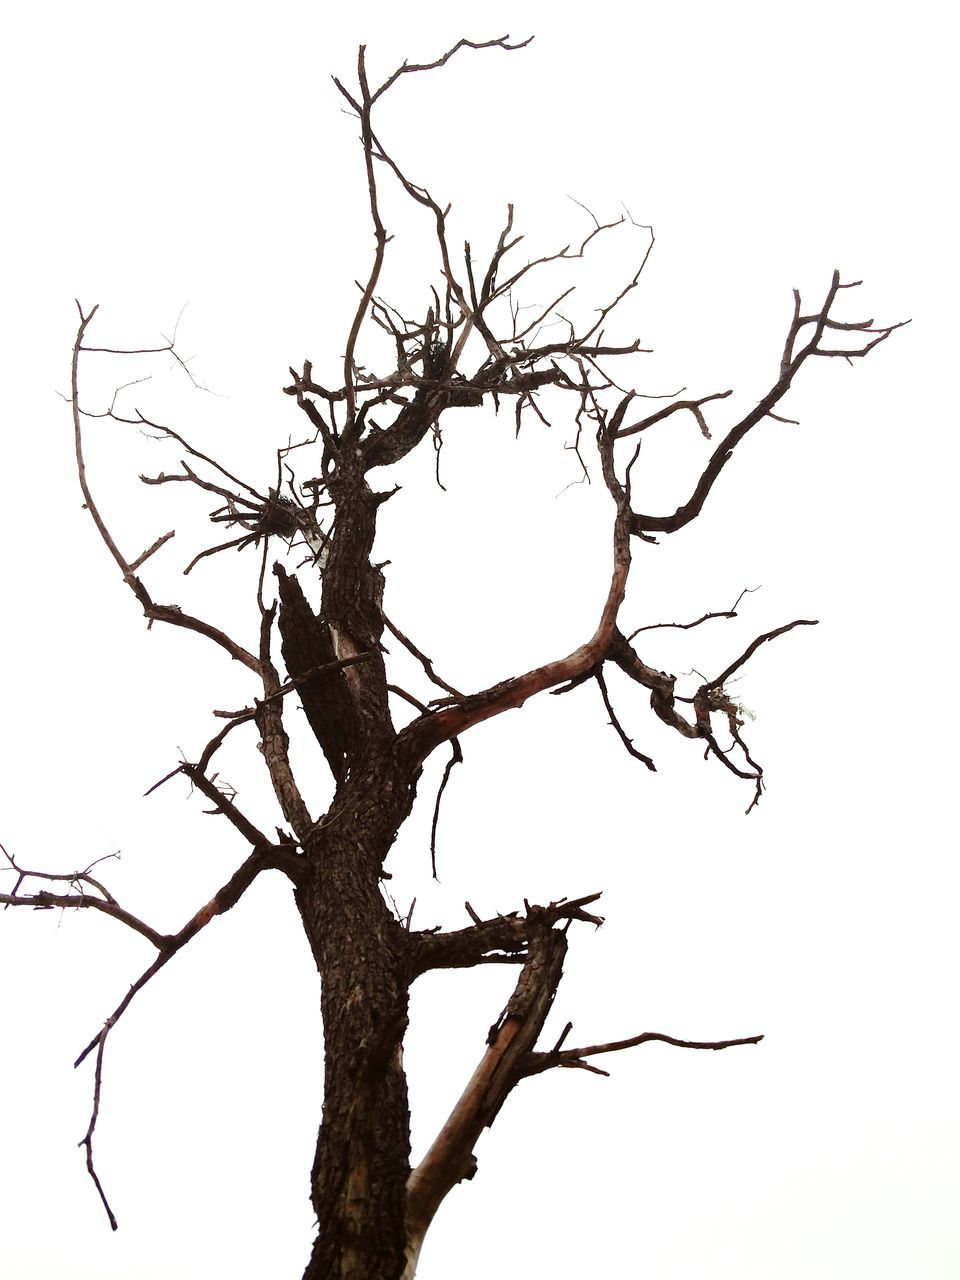 bare tree, branch, tree, low angle view, dead plant, dead tree, nature, dried plant, clear sky, no people, outdoors, tree trunk, lone, beauty in nature, day, sky